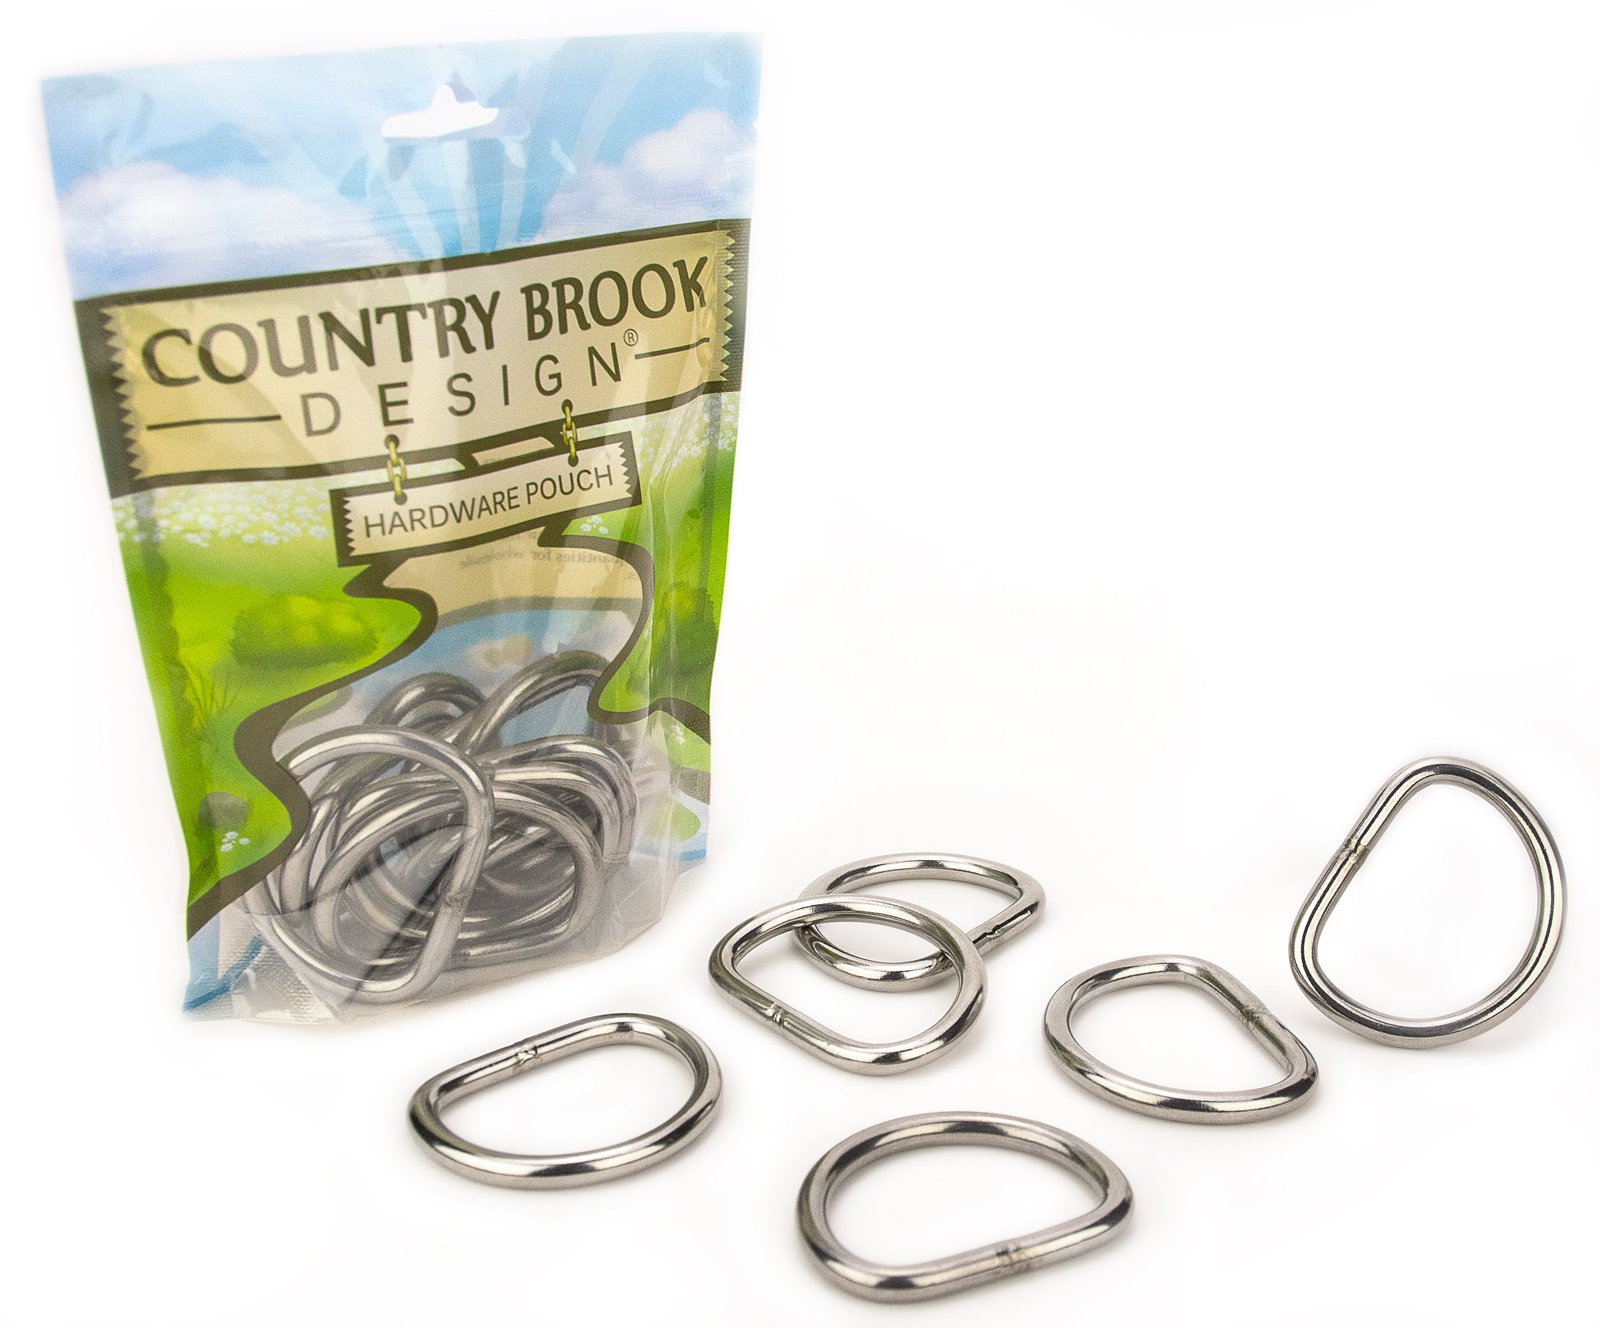 50 - Country Brook Design - 1 1/2 Inch Stainless Steel Welded D-Rings